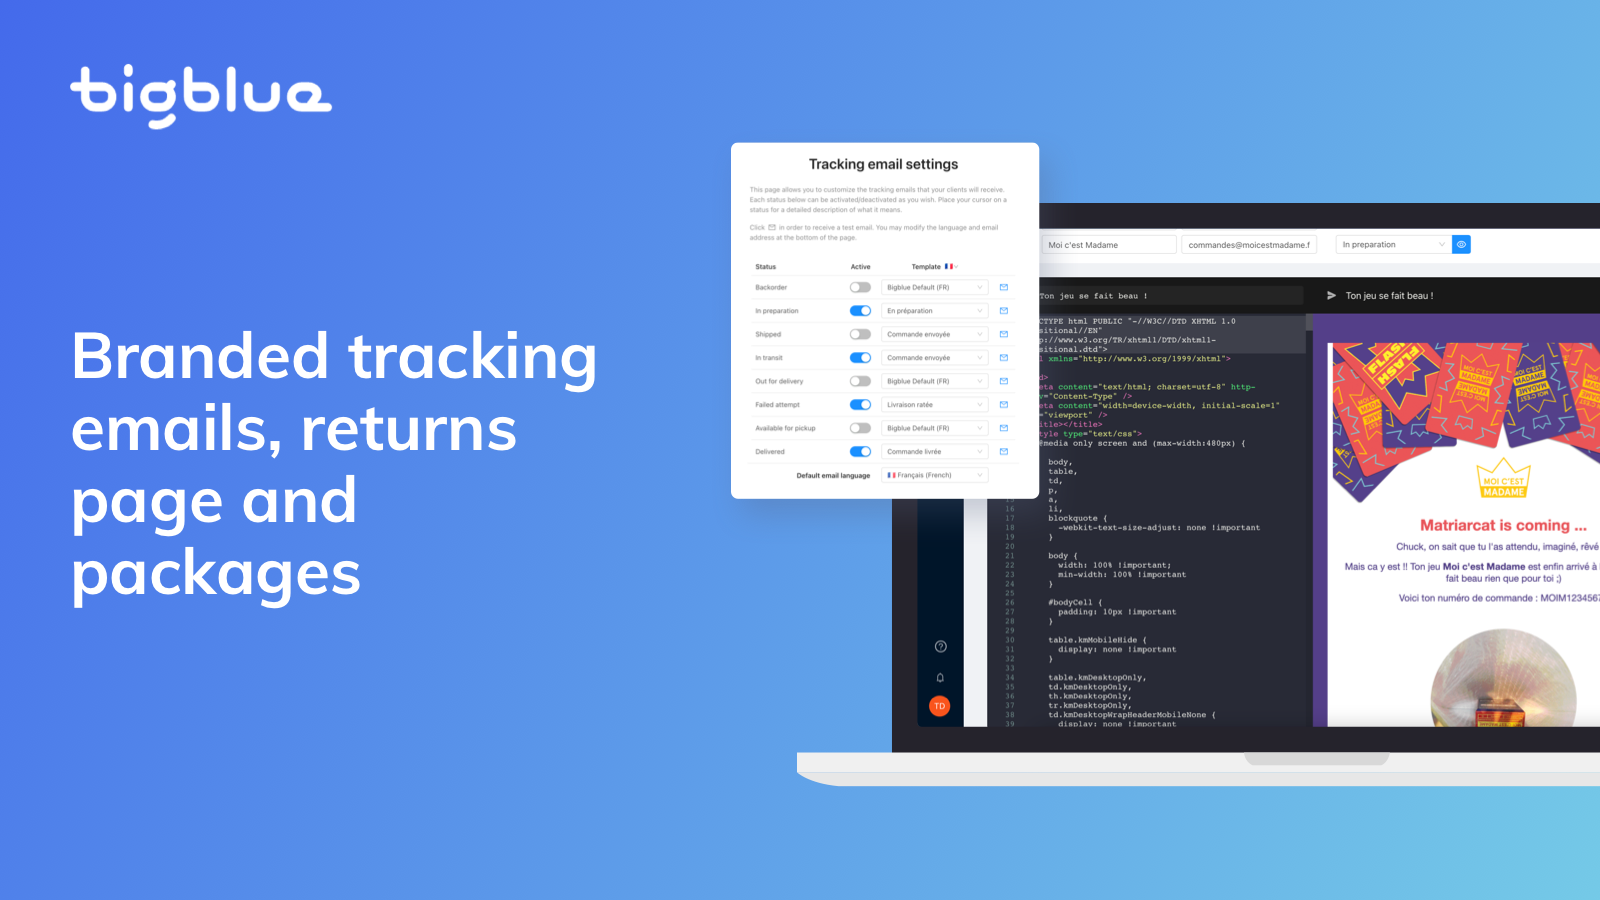 Branded tracking emails, returns page and packages